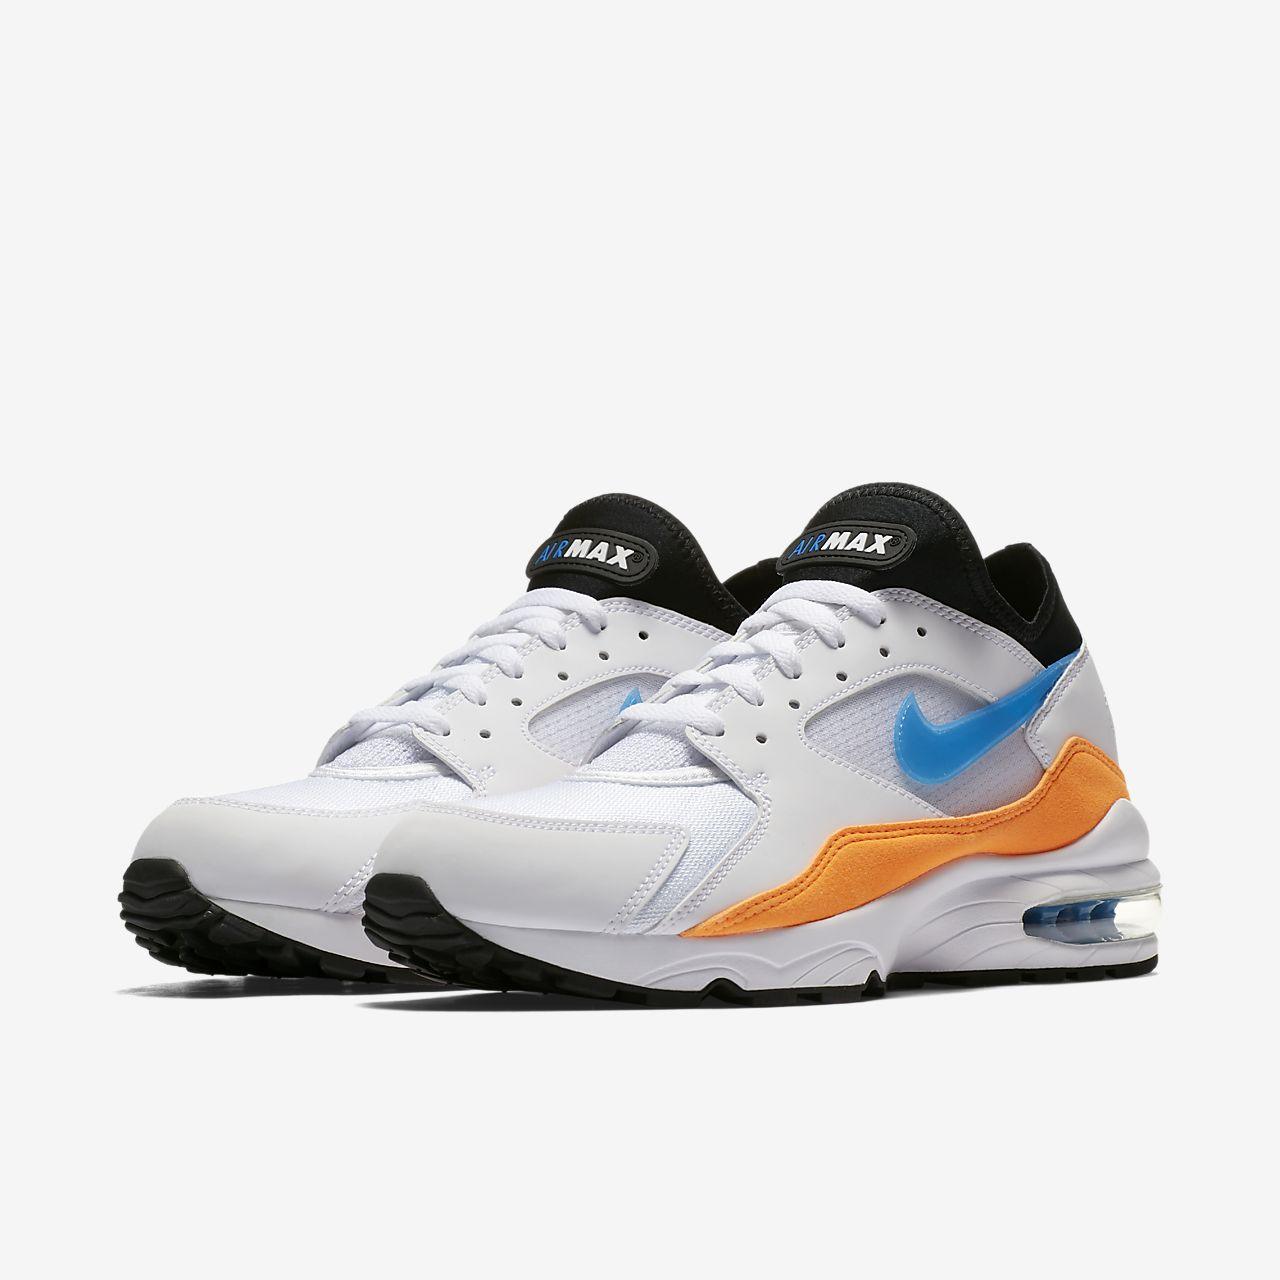 buy online 8fa7f 8c5d0 ... Nike Air Max 93 Mens Shoe